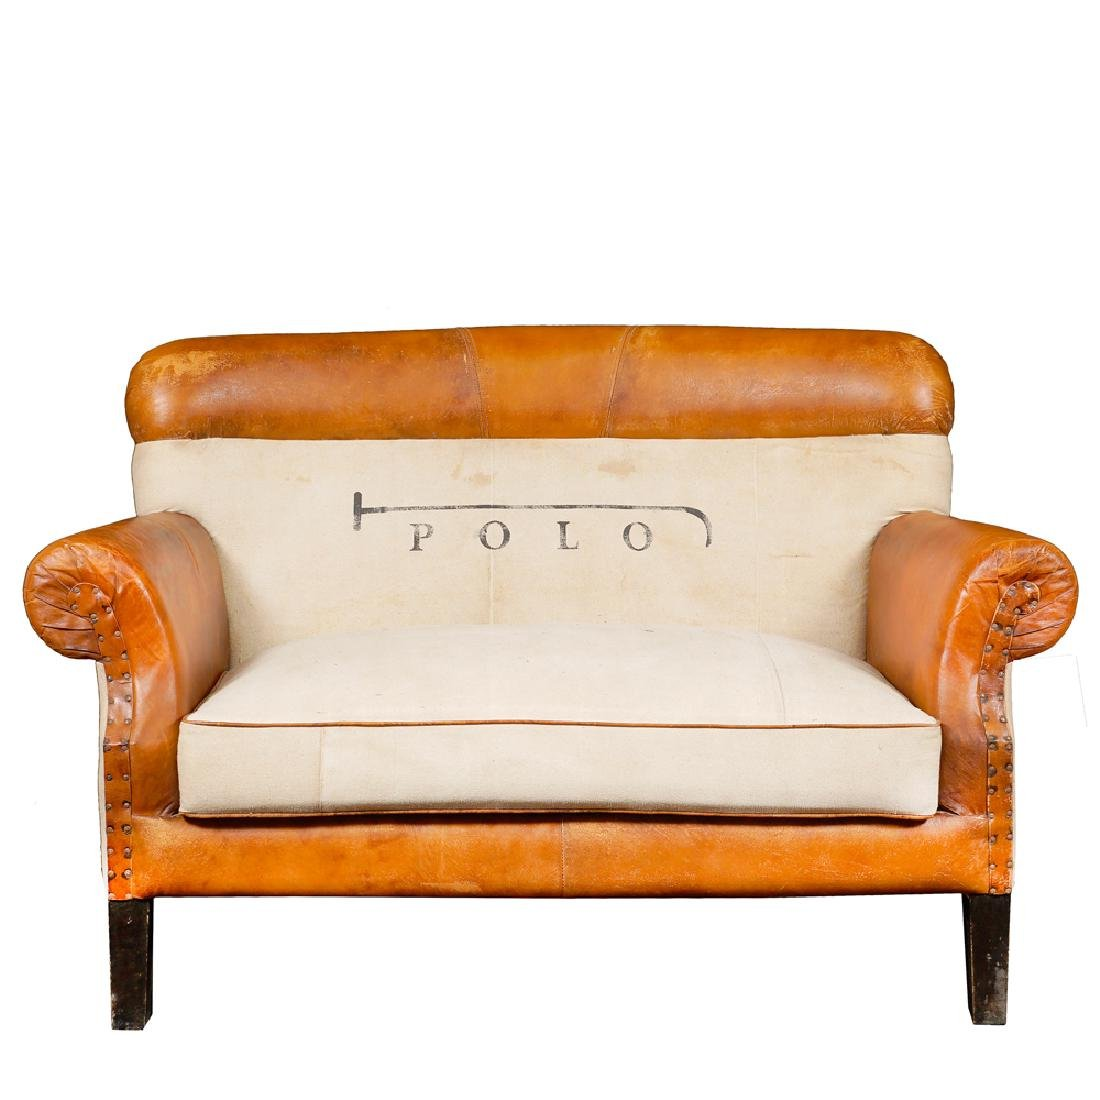 Polo sofa 20th century 95x143x75 cm.